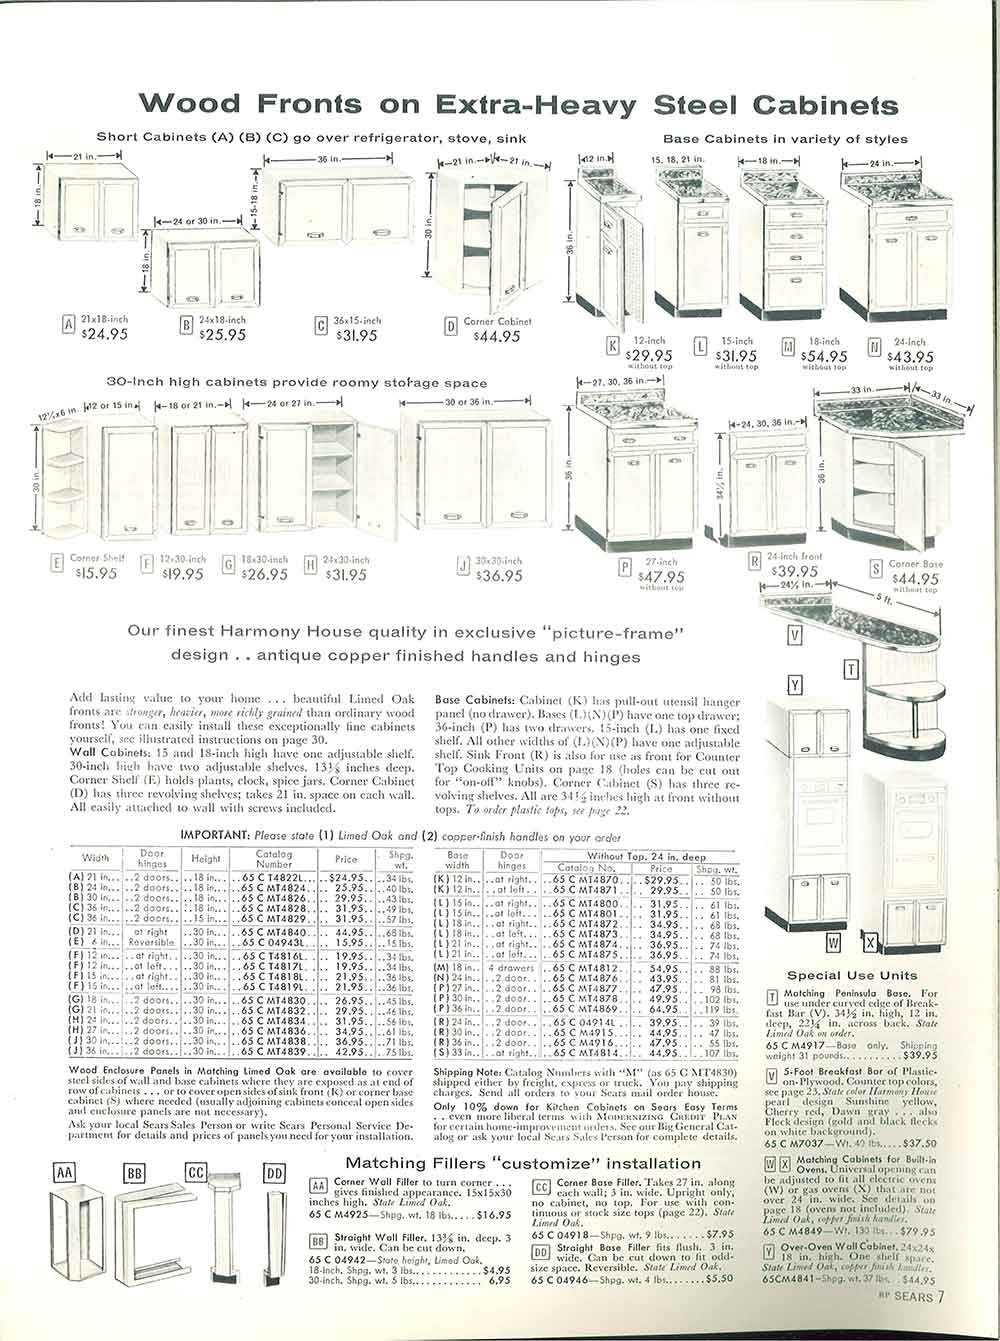 1958 Sears Kitchen Cabinets And More 32 Page Catalog